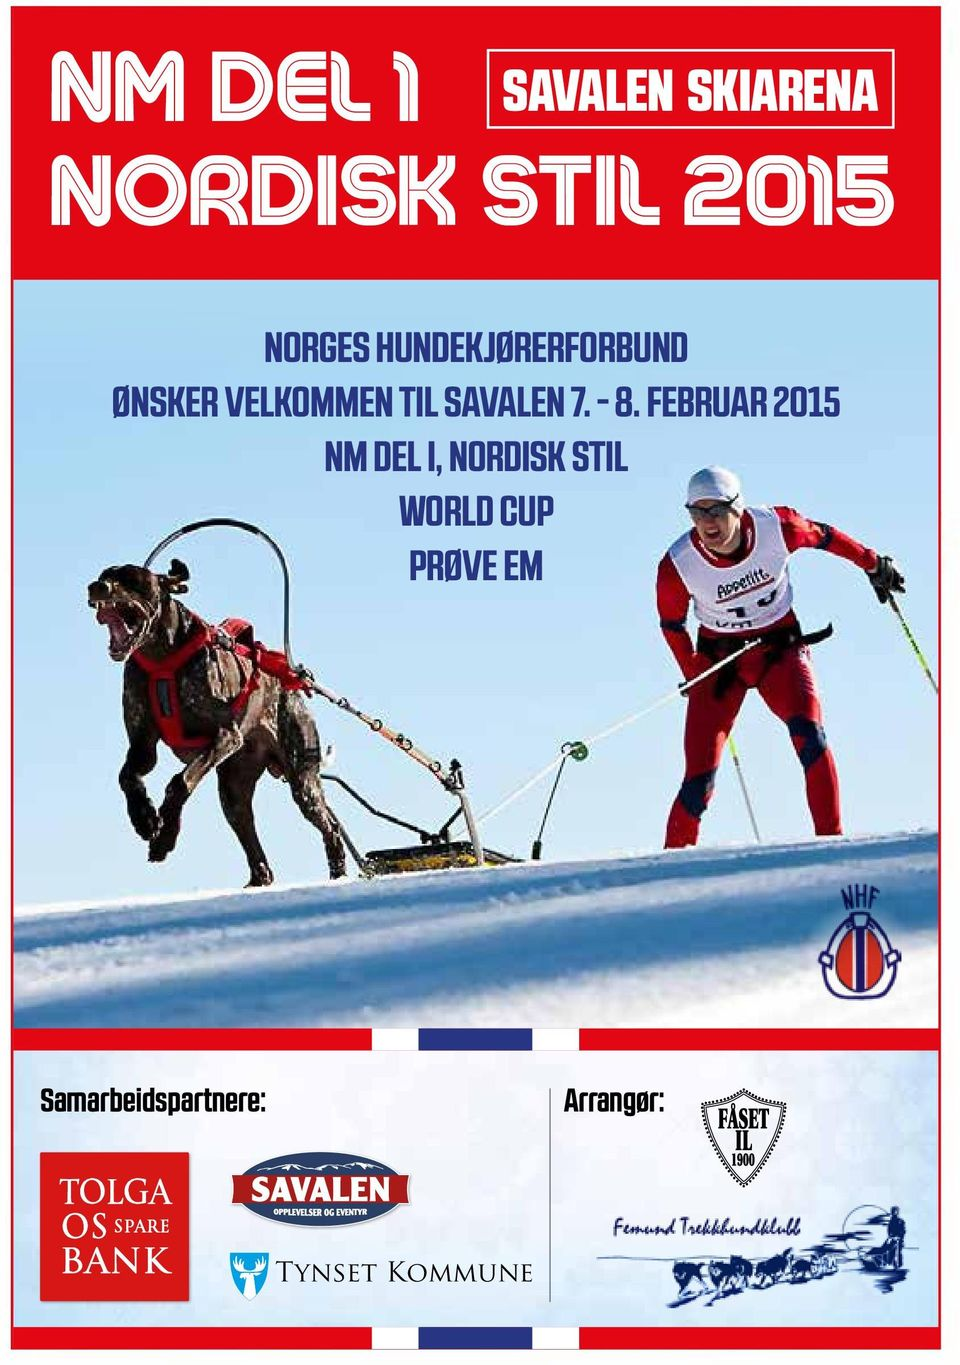 - 8. FEBRUAR 2015 NM DEL I, NORDISK STIL WORLD CUP